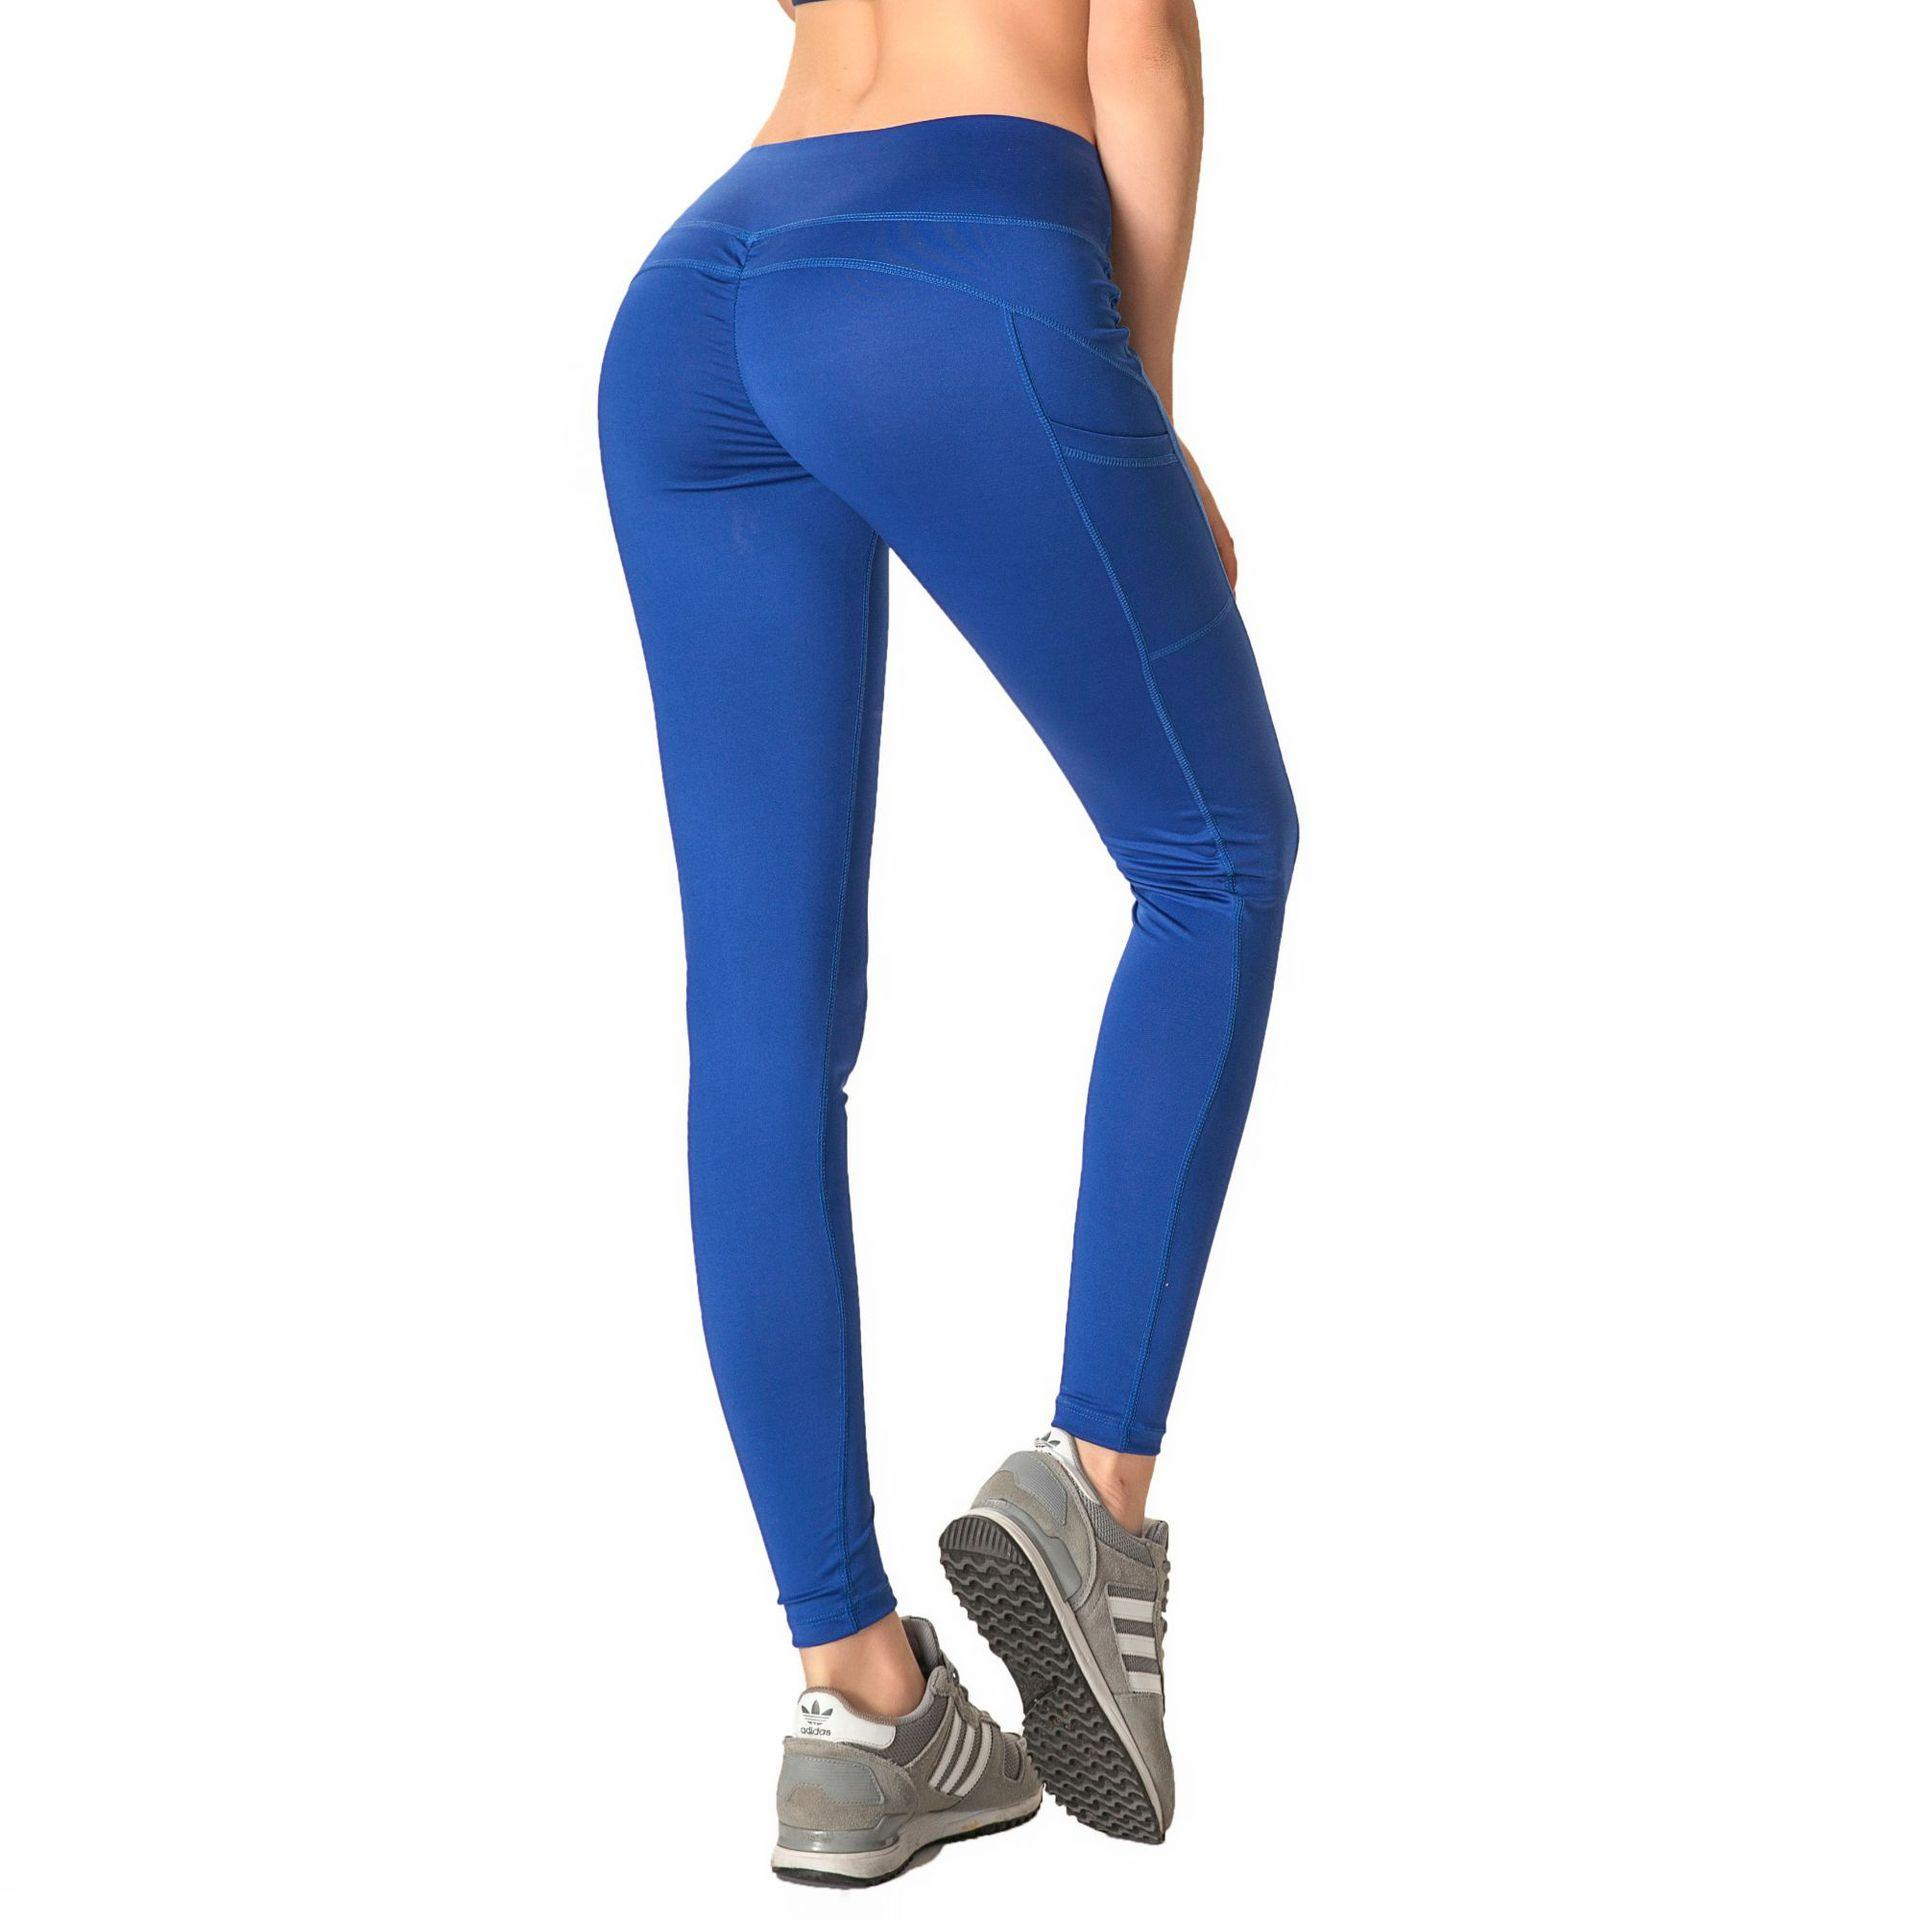 8dbe82c6fa 2019 European And American Hot Selling Side Hidden Pockets Yoga Pants High  Elastic Tight Breathable Fast Drying Fitness Pants Sexy Sports Pants From  ...